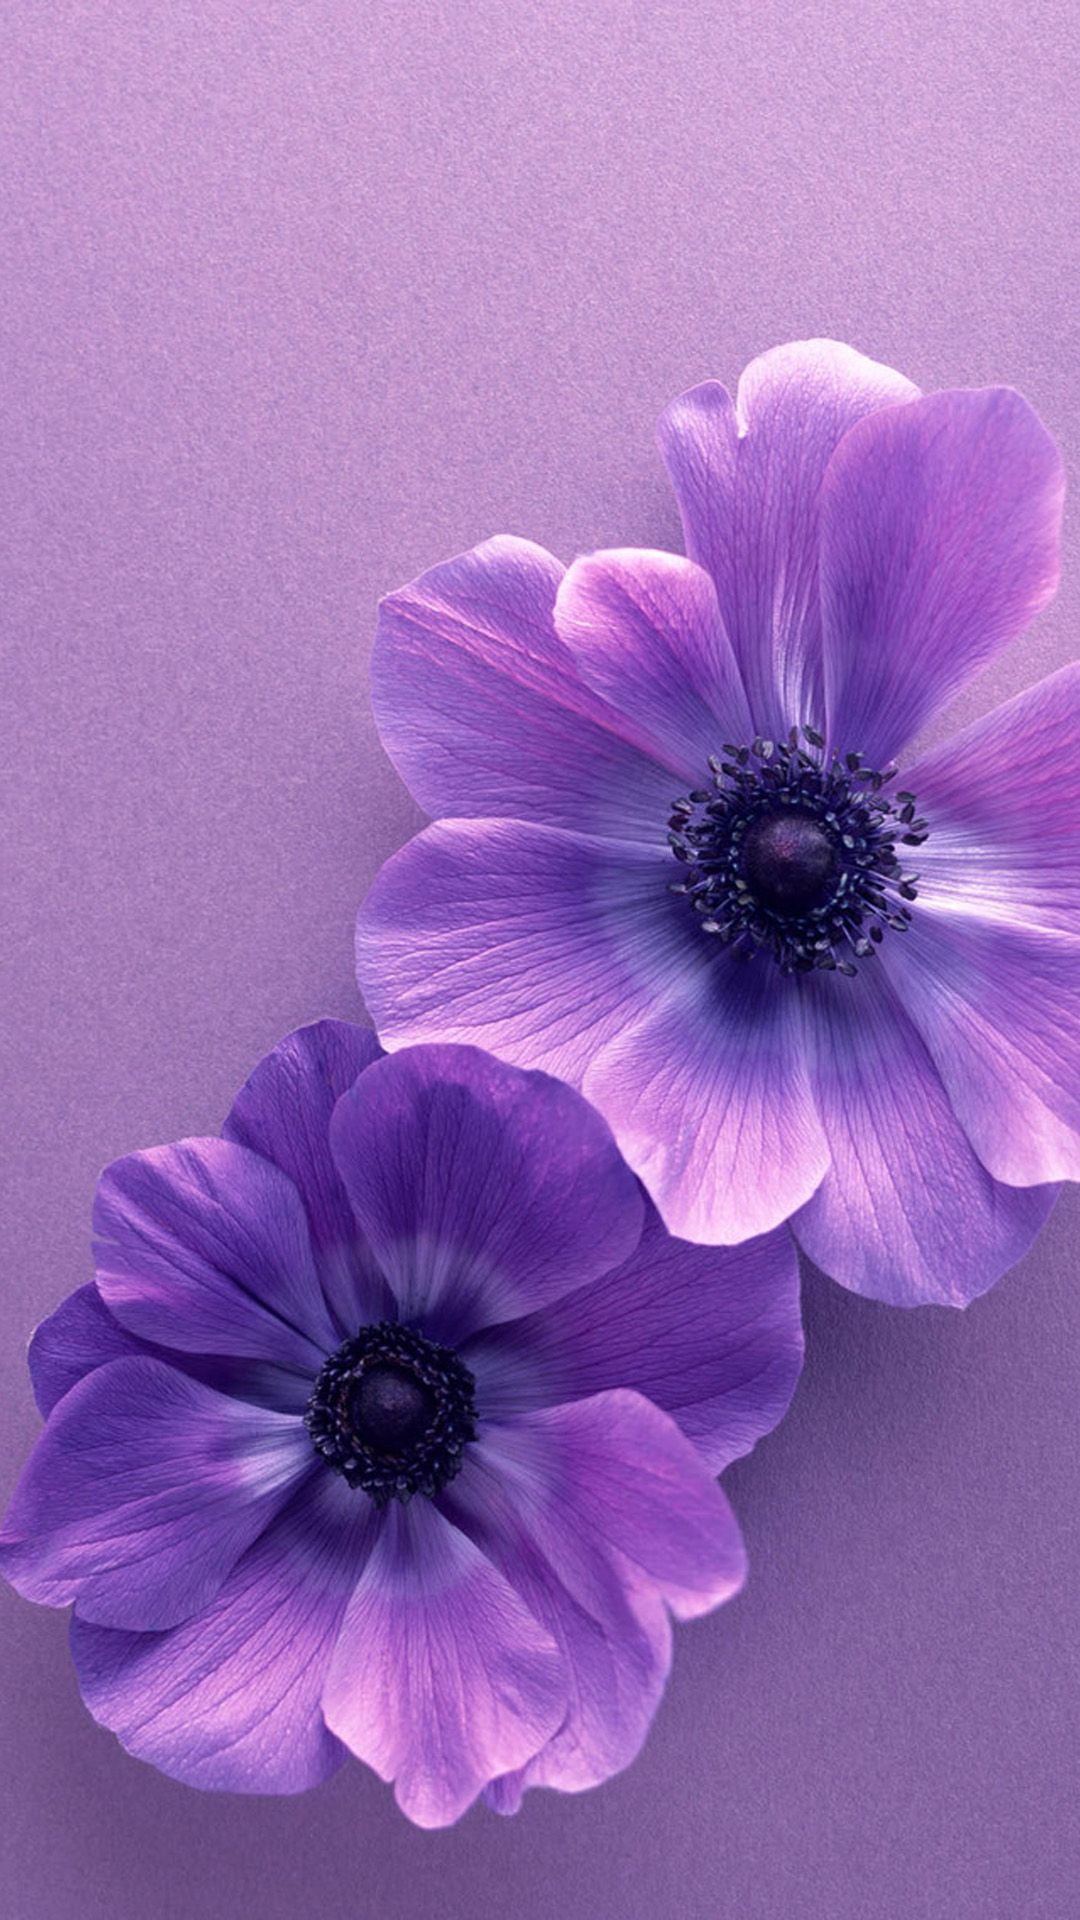 Flower Samsung Galaxy S5 Wallpapers 152 Purple Flowers Wallpaper Purple Wallpaper Phone Flower Iphone Wallpaper